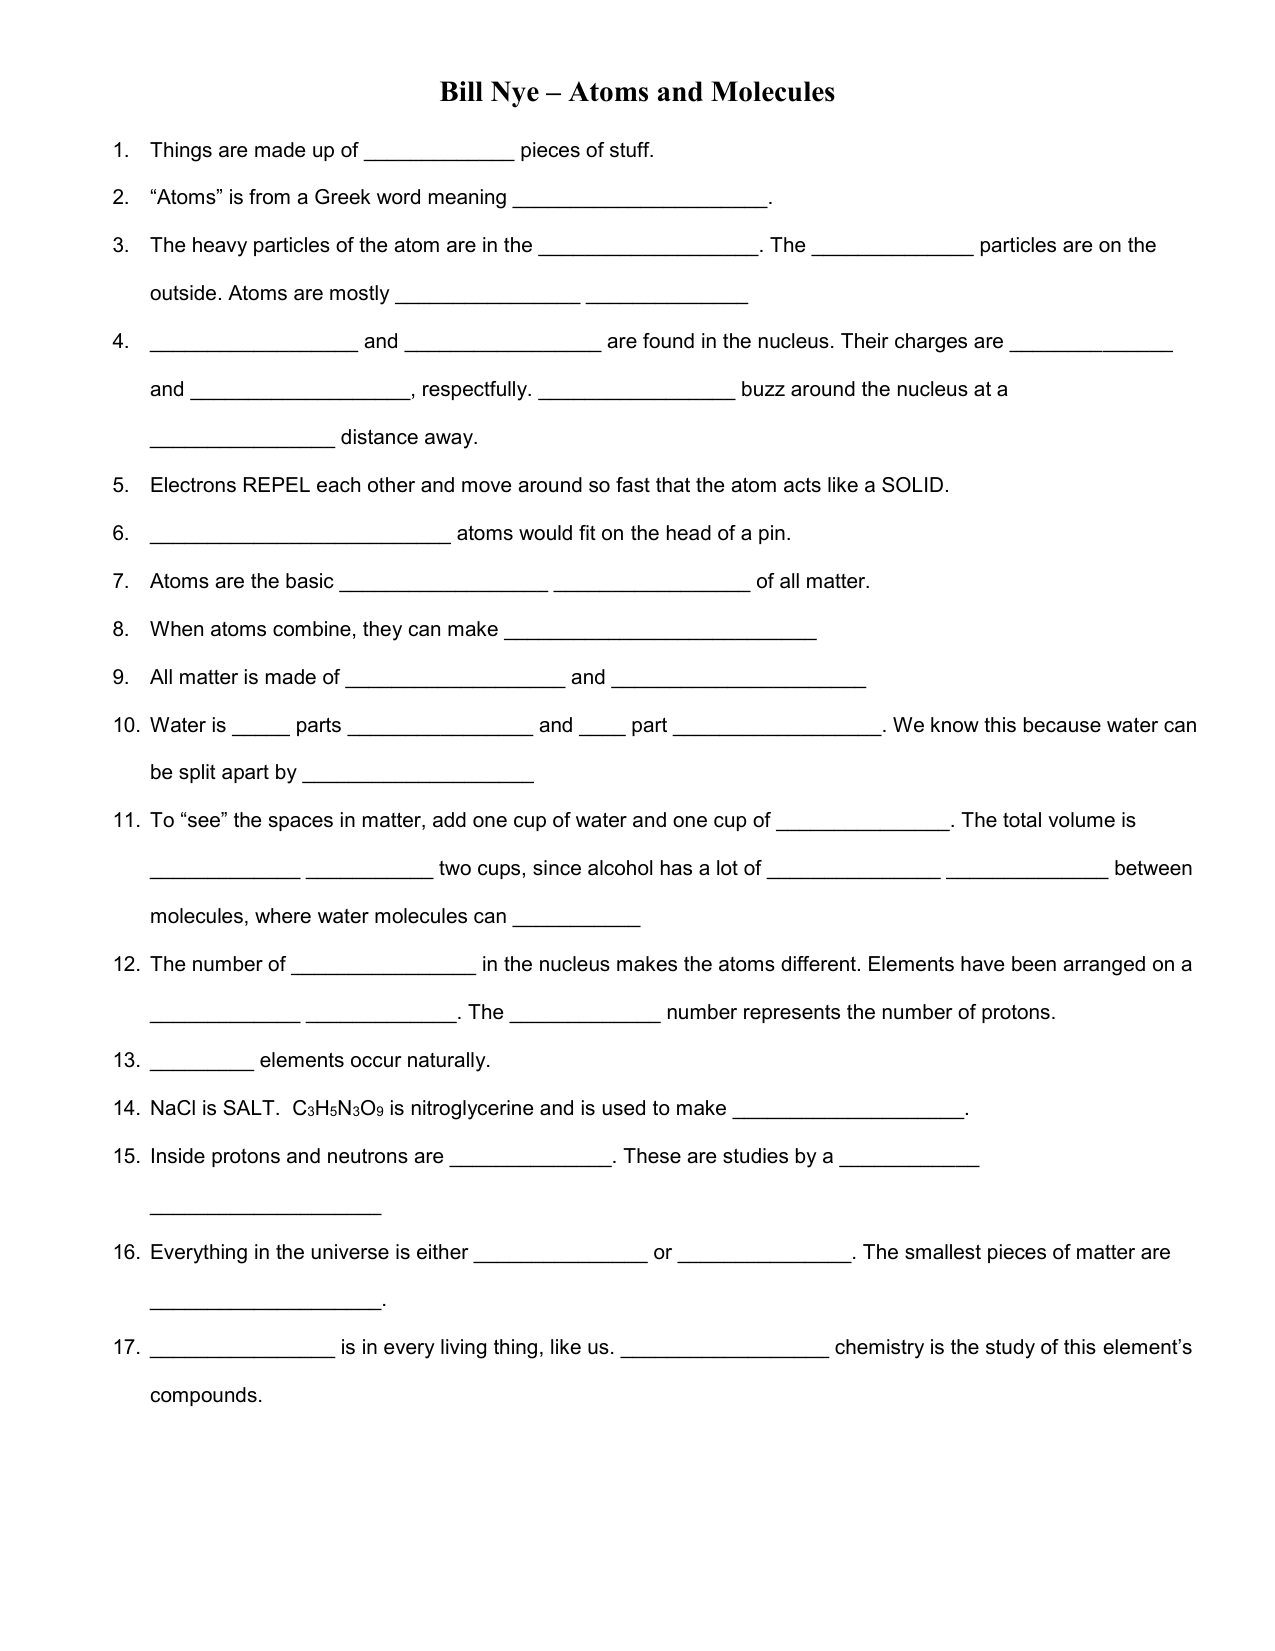 Printables Of Bill Nye Atoms Worksheet Answers